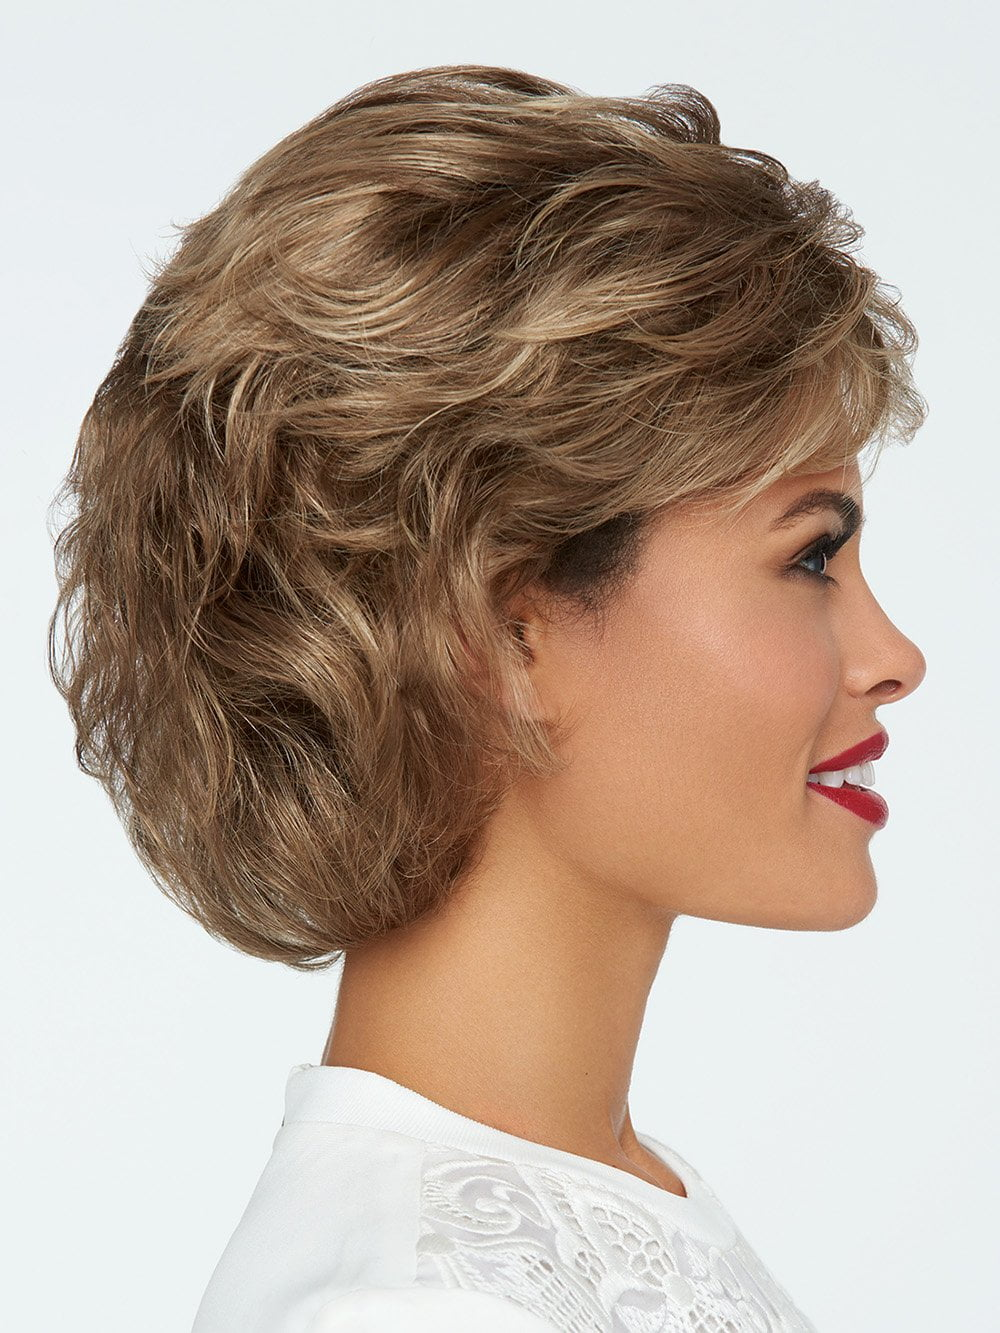 This textured, wavy style features all over layers, soft body and curls.